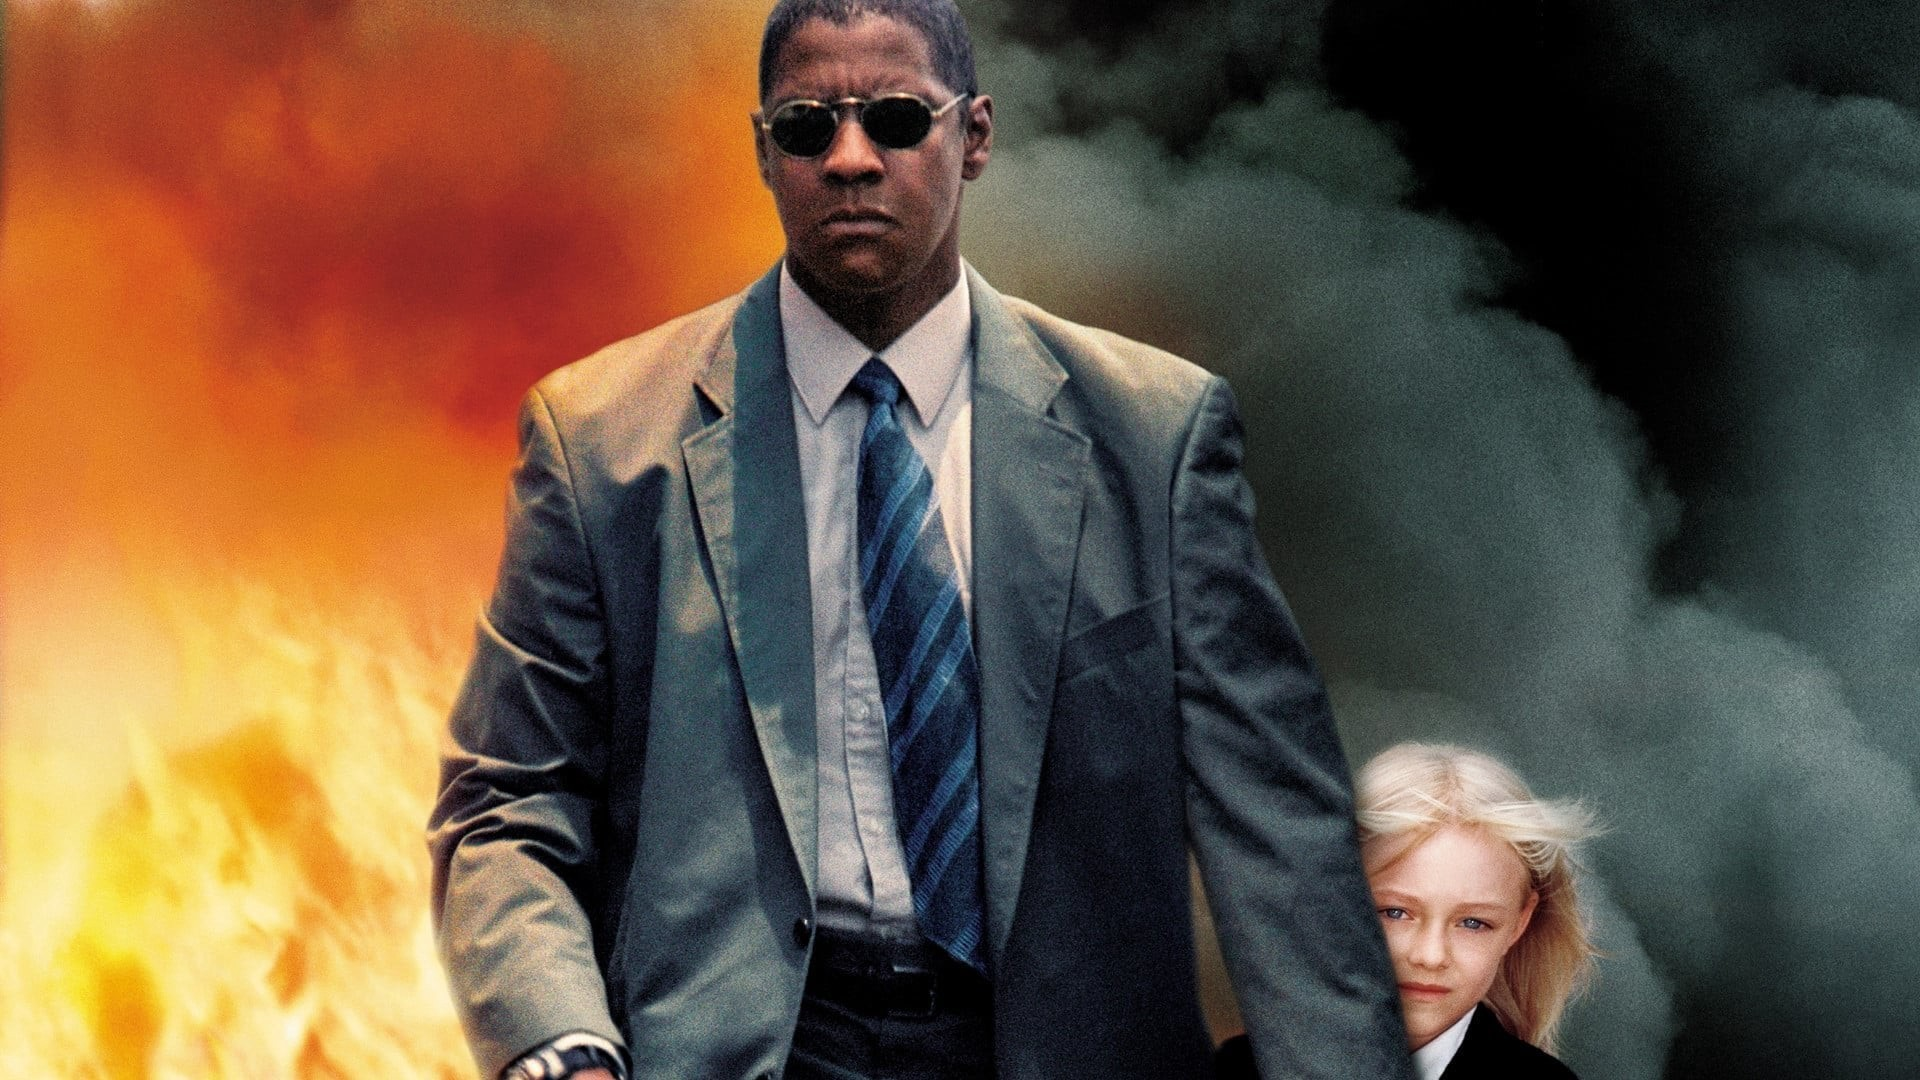 watch man on fire online free with subtitles